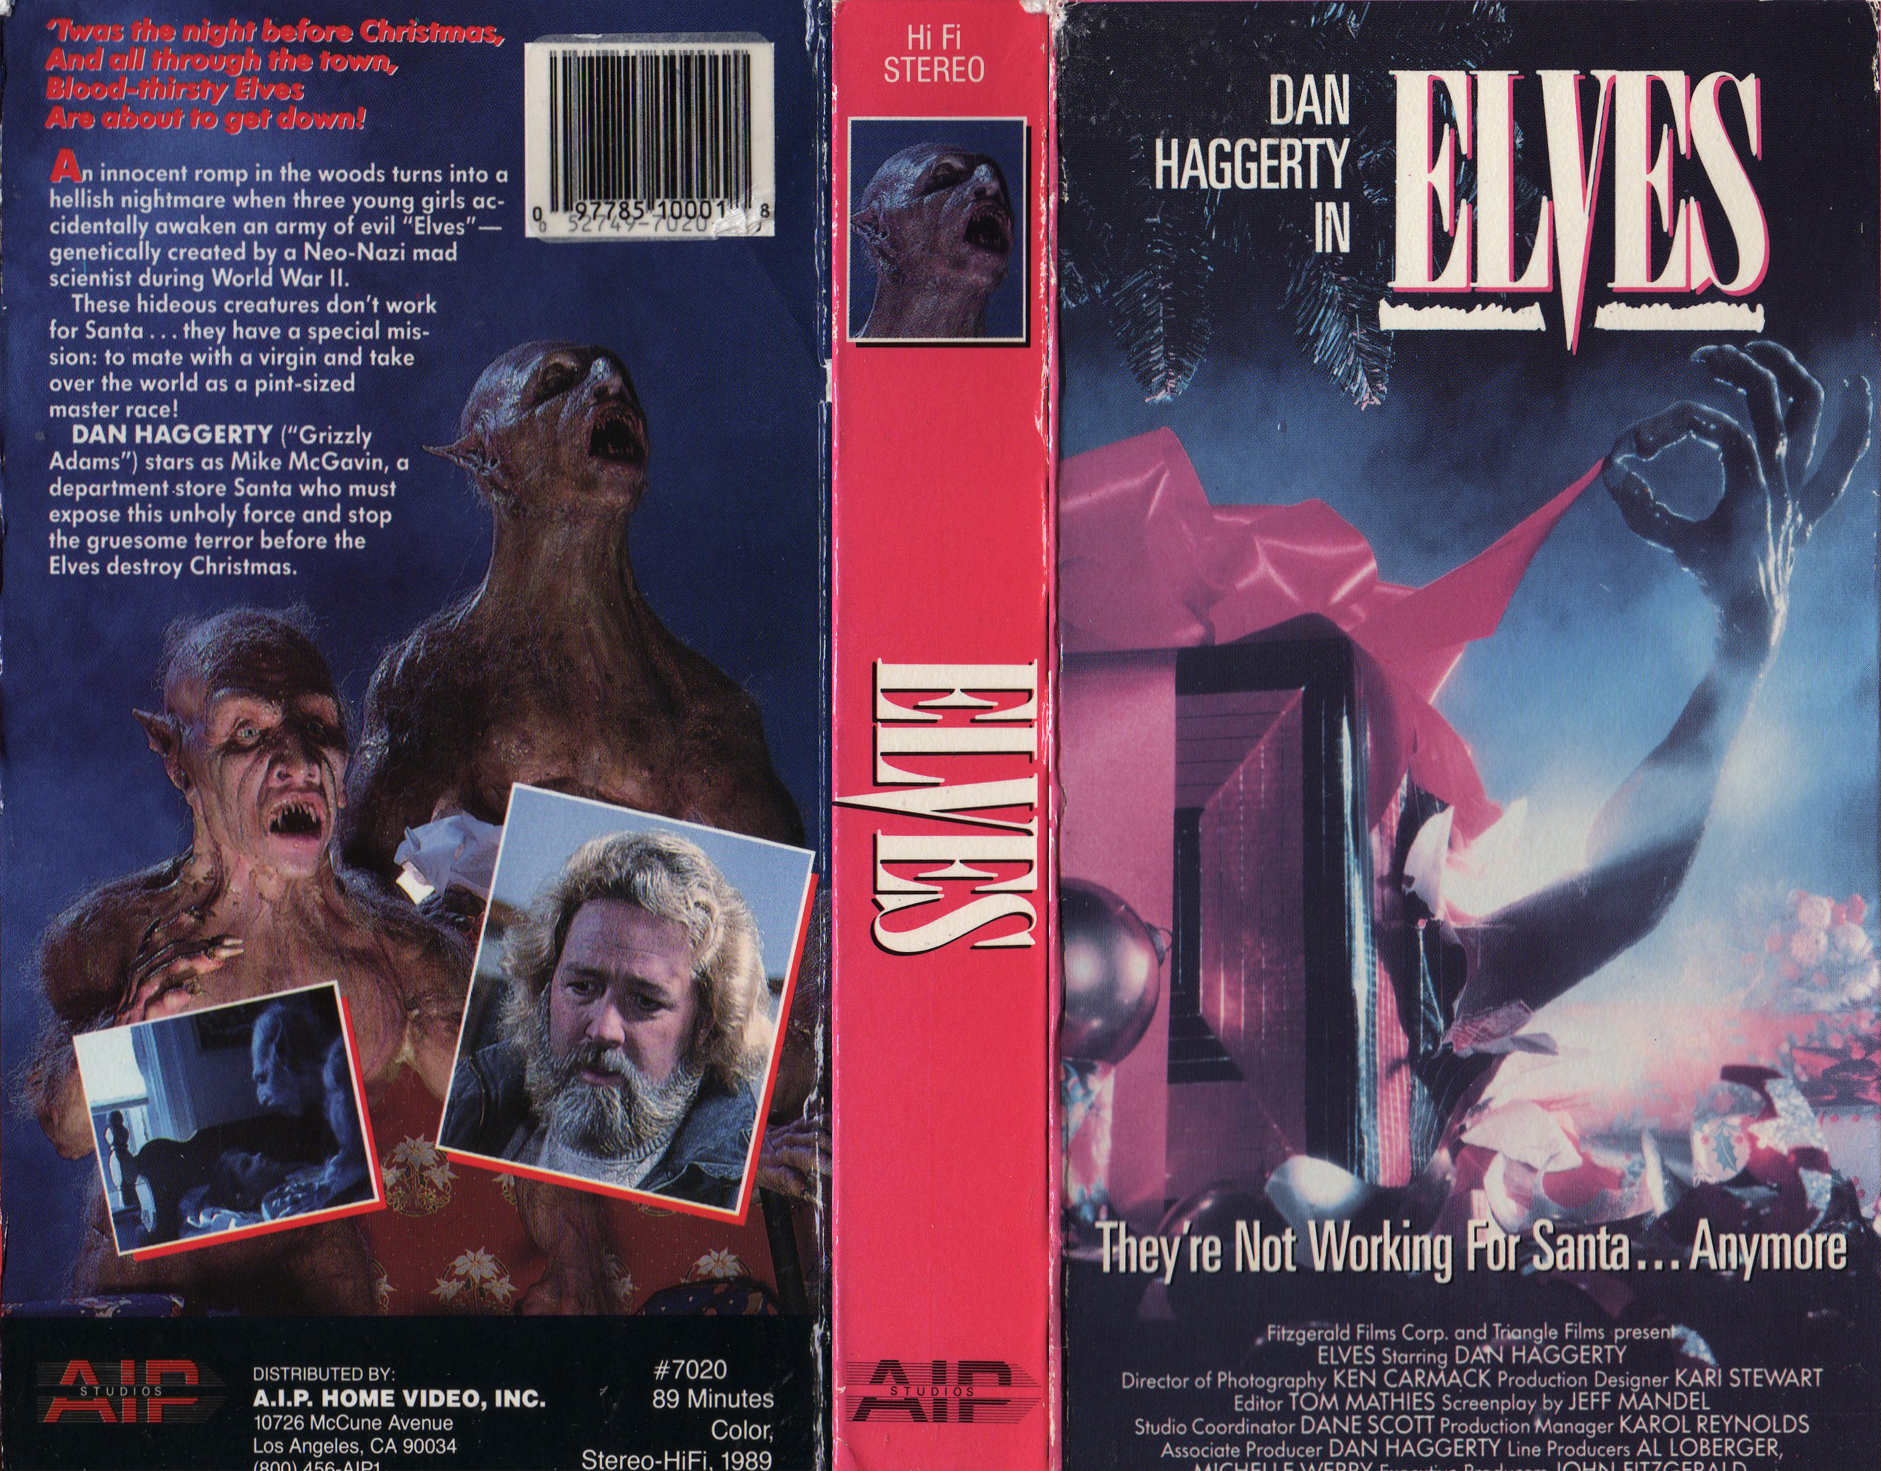 elves-1989-aip-vhs-covermondozillaelves-1989-aip-vhs-coverelves-6elves-1989-01-customelves34-elves-768x559outfit-fit-for-a-bimbowilly-leering-at-titsscreen-shot-2016-12-17-at-22-11-41